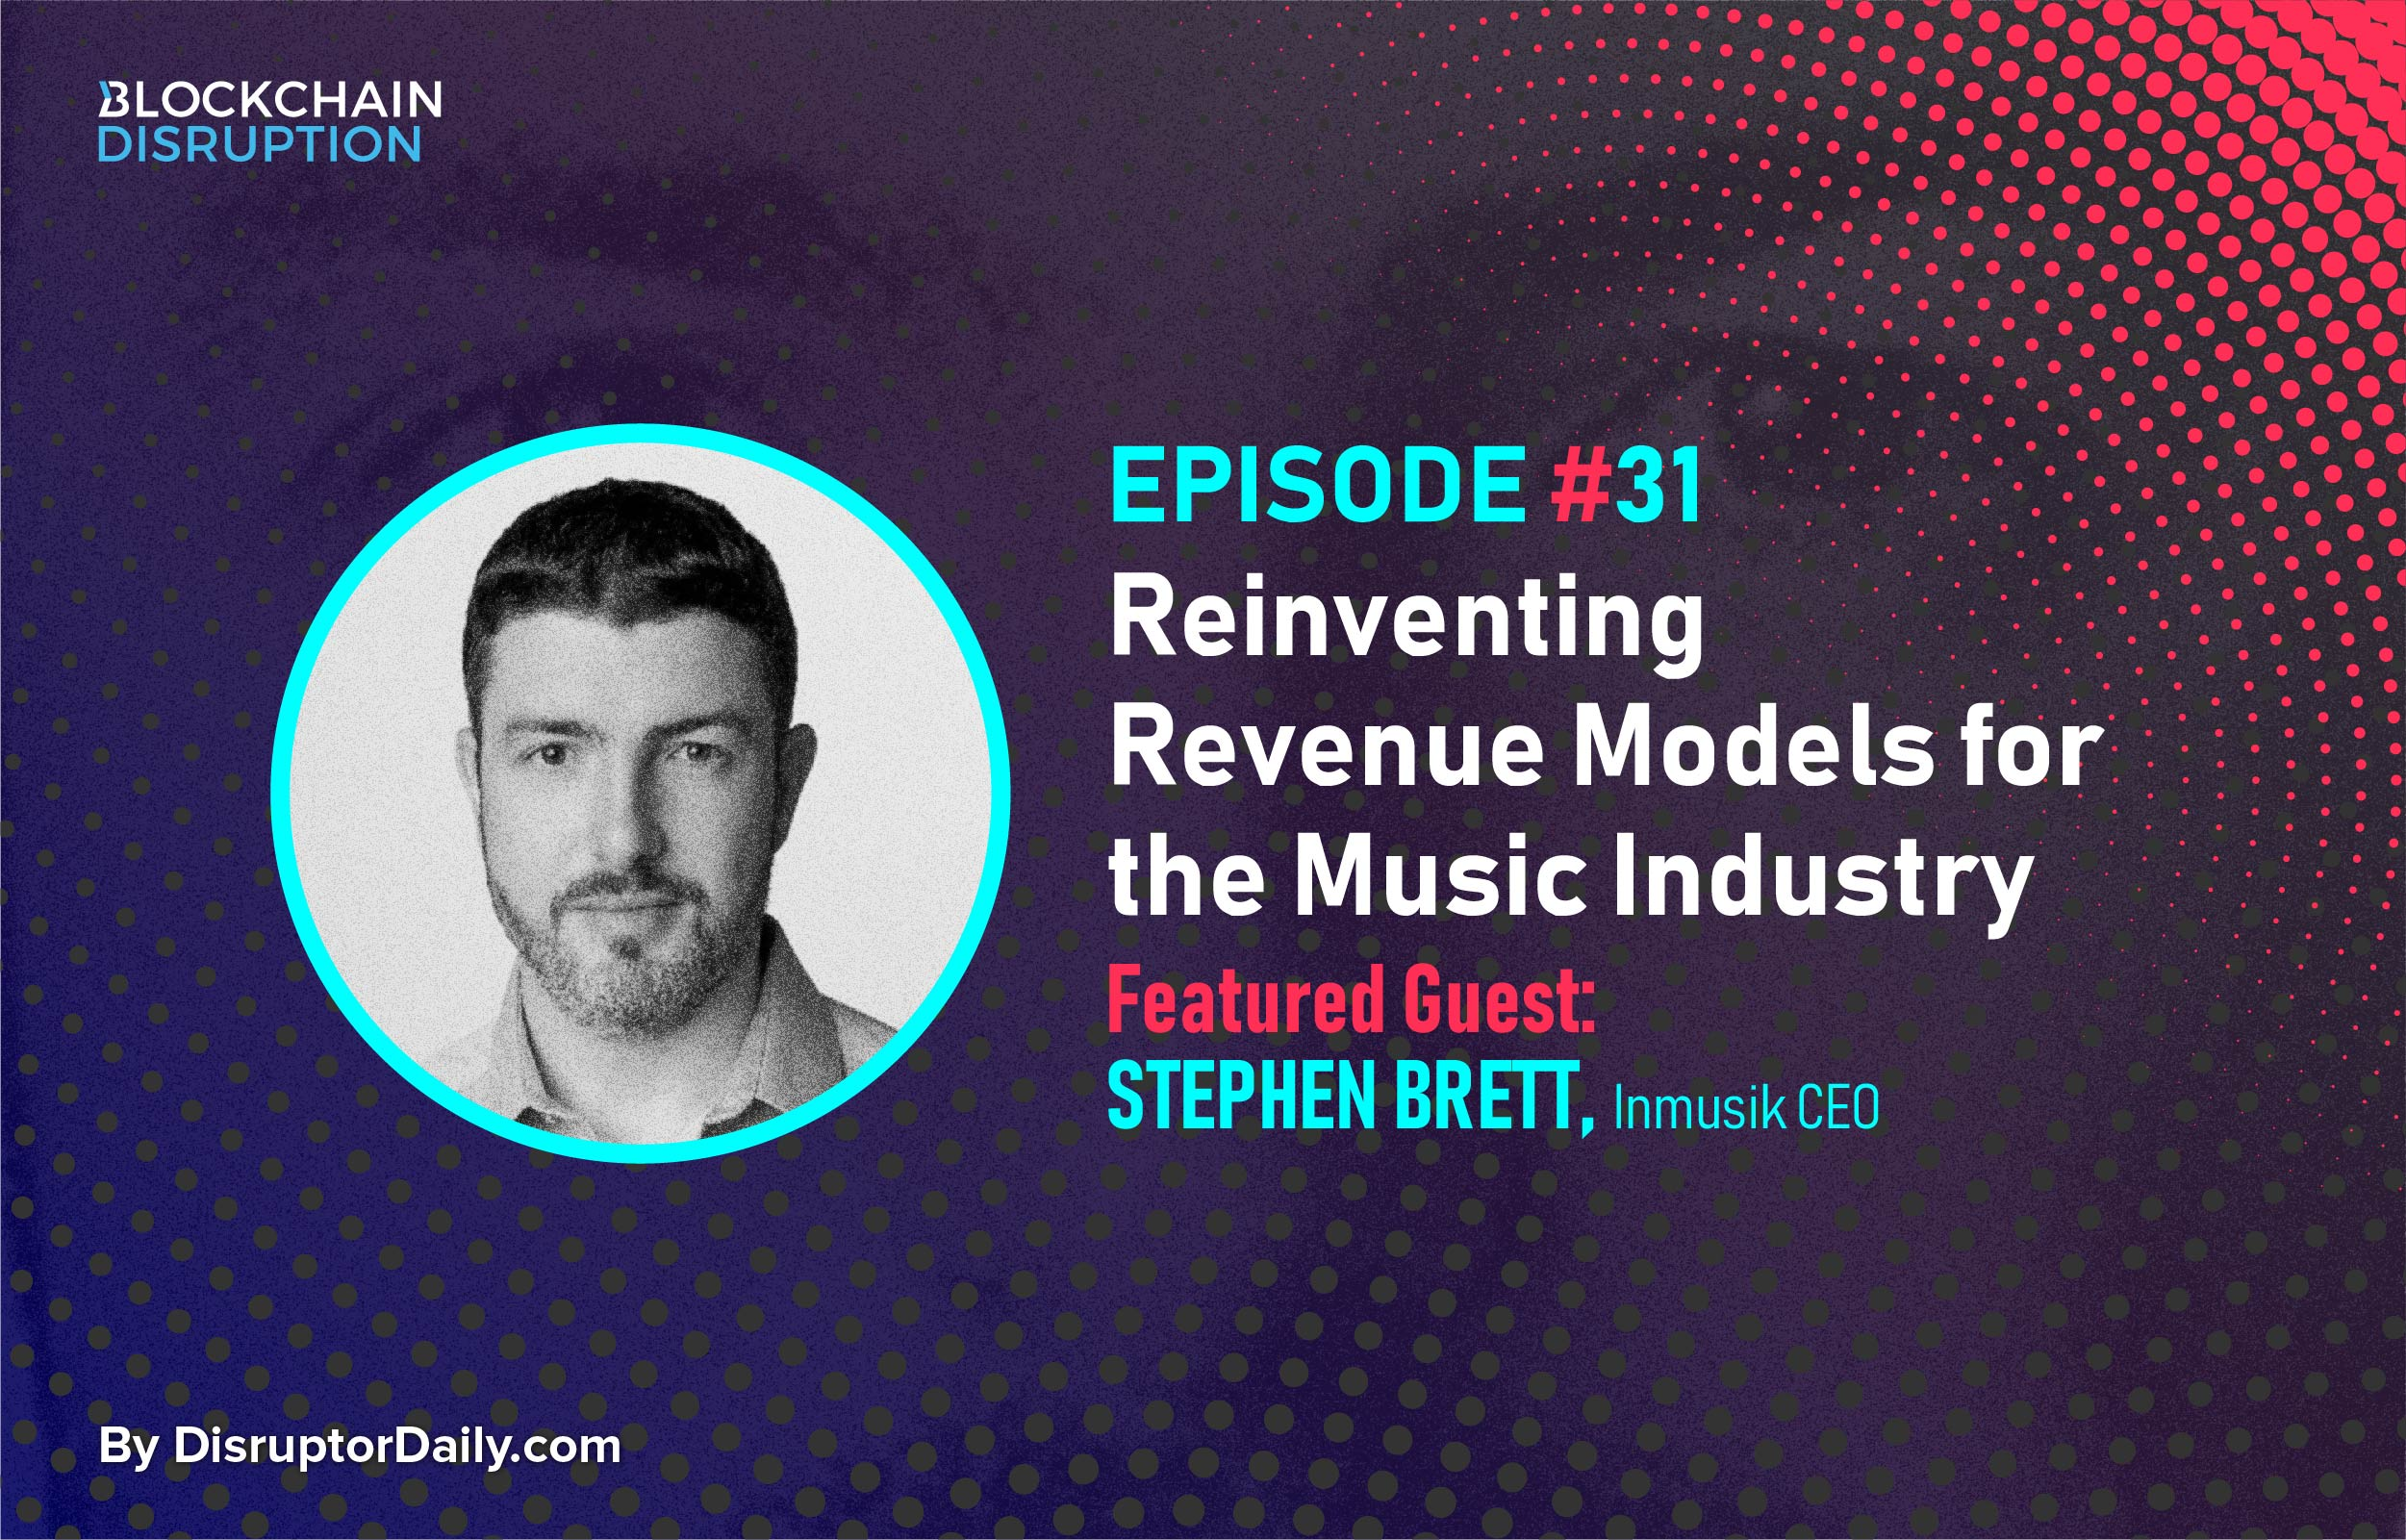 The Music Ep Episode 31 Reinventing Revenue Models For The Music Industry